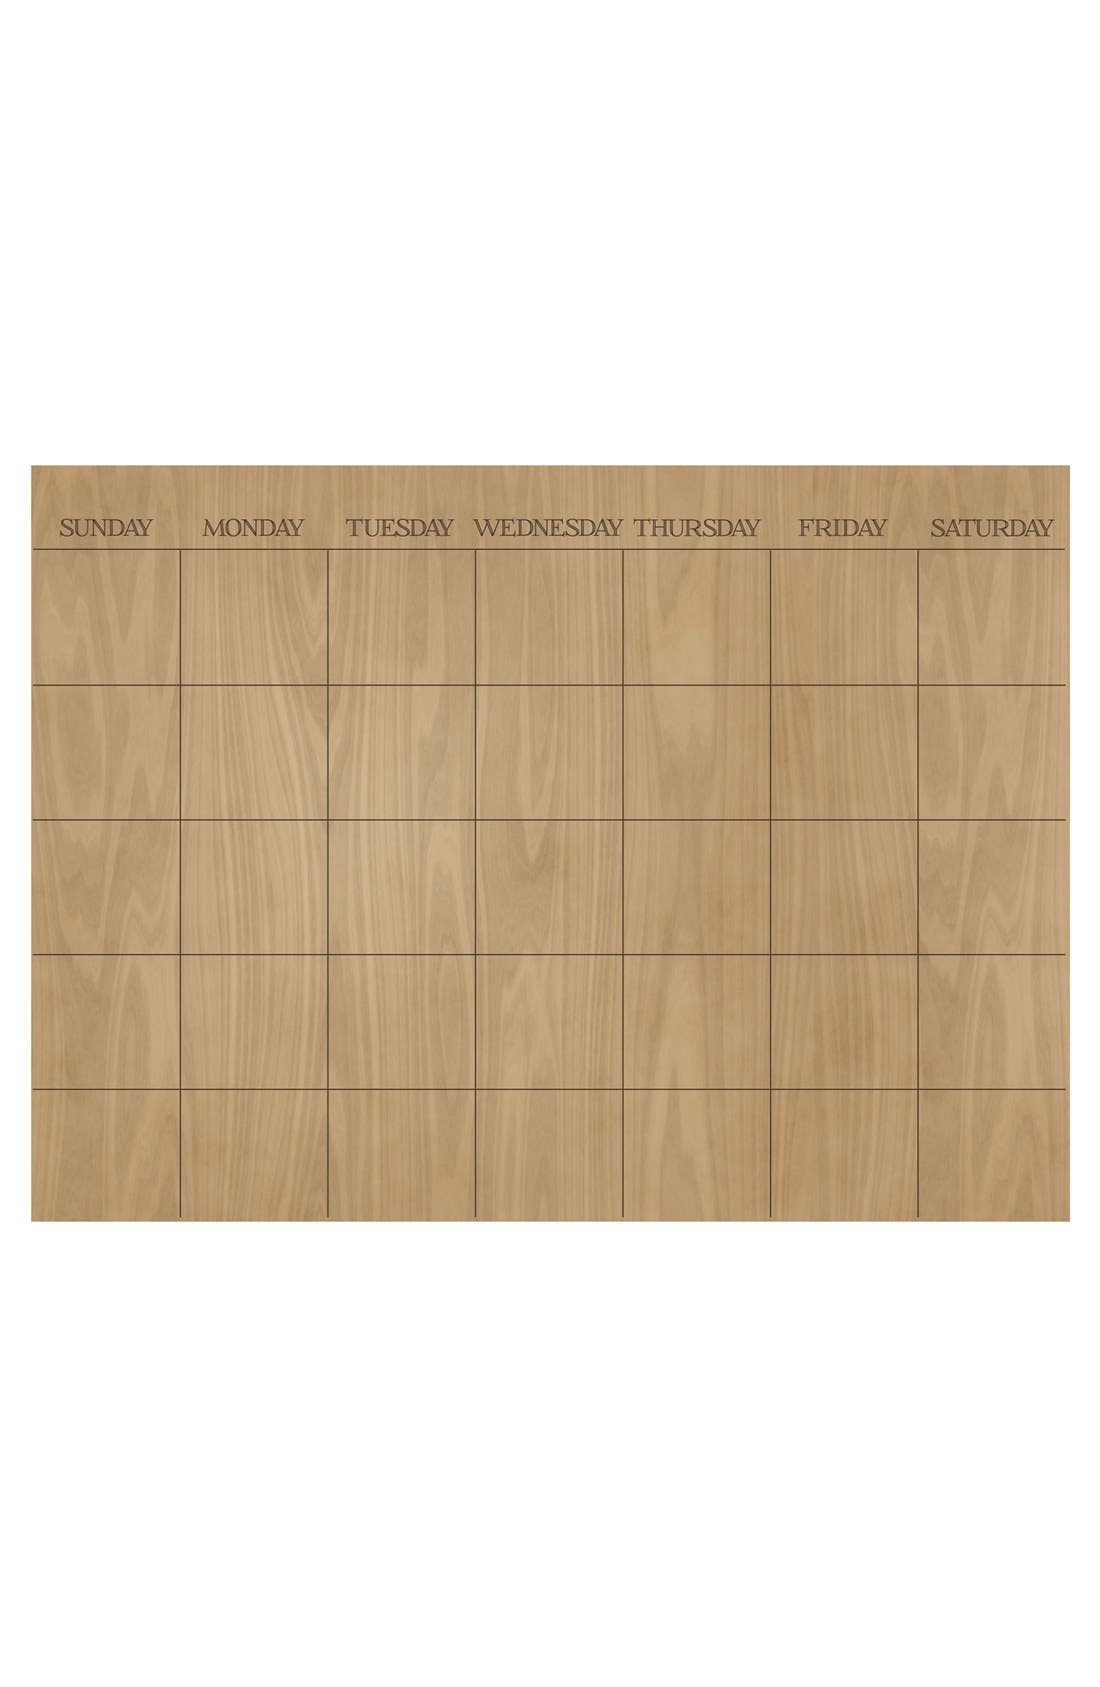 'Hardwood' Monthly Dry Erase Calendar,                         Main,                         color, Brown